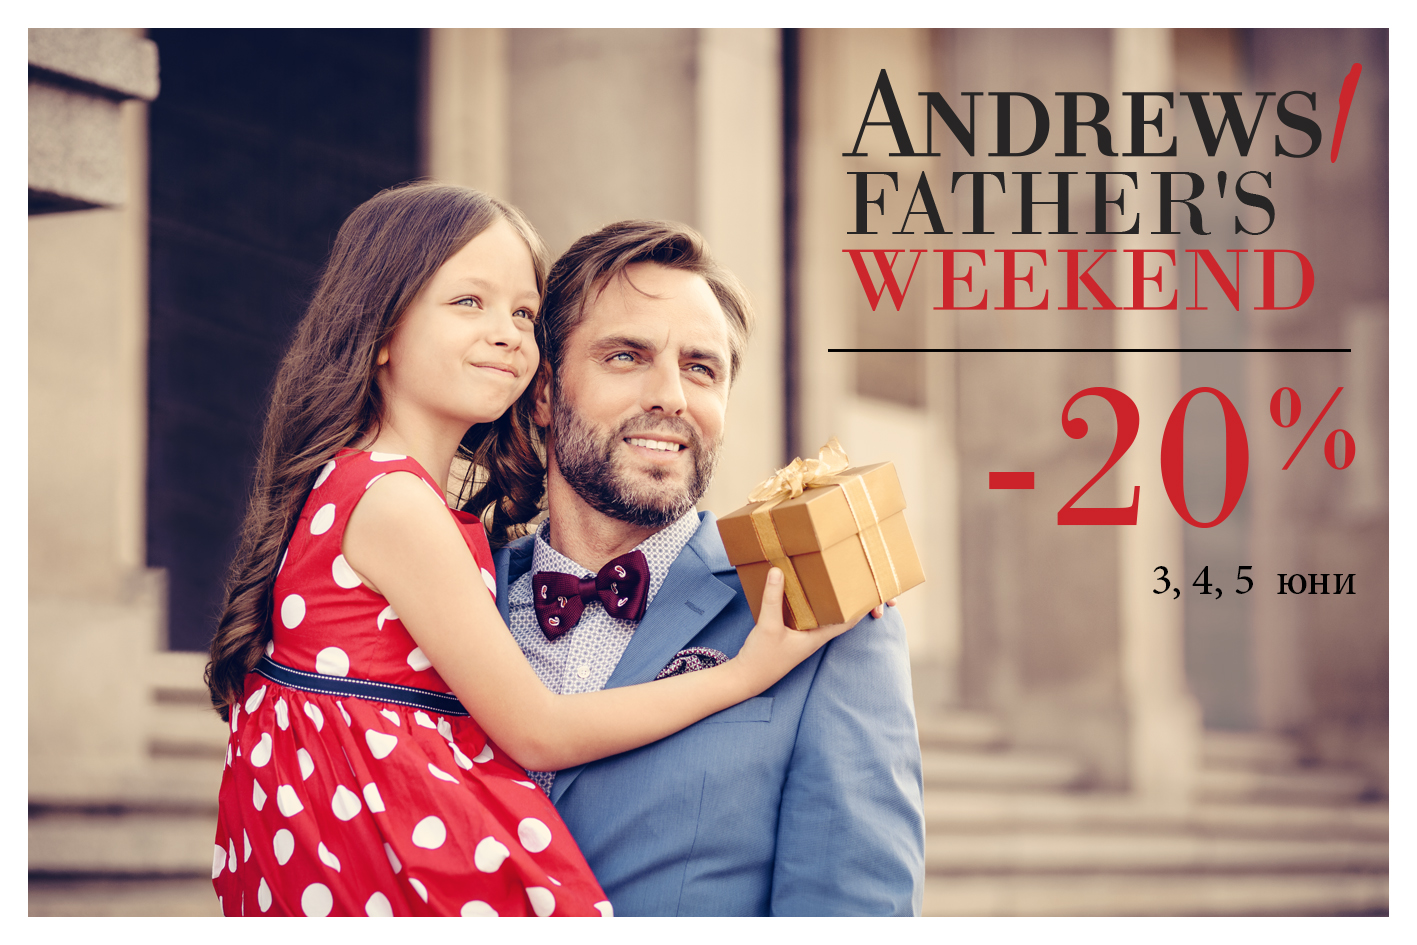 ANDREWS/ FATHER'S WEEKEND